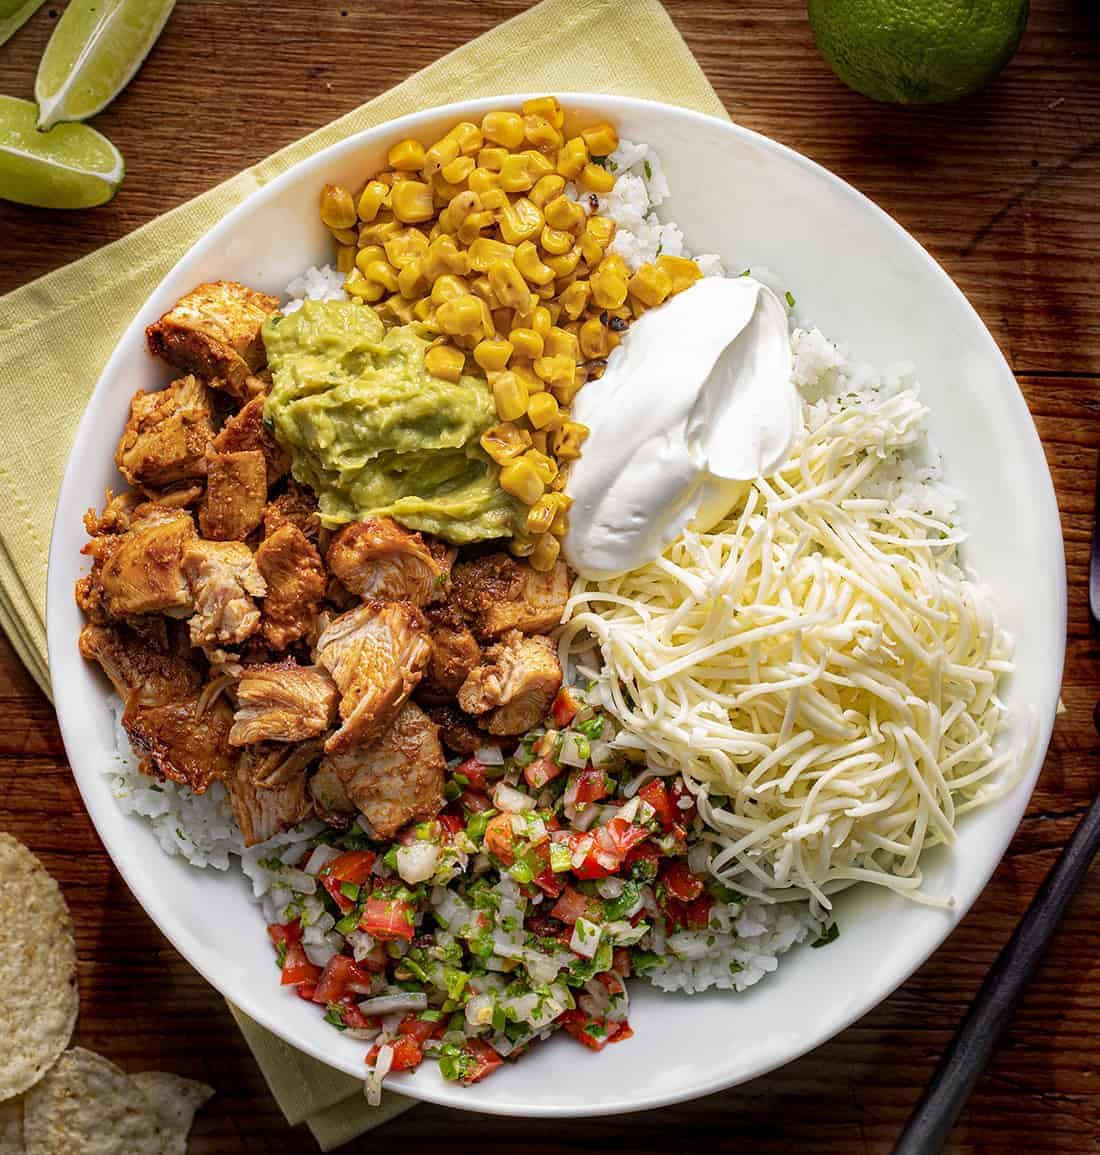 Bowl of Chipotle Chicken with Rice, Pico, cheese, Corn, and Guacamole